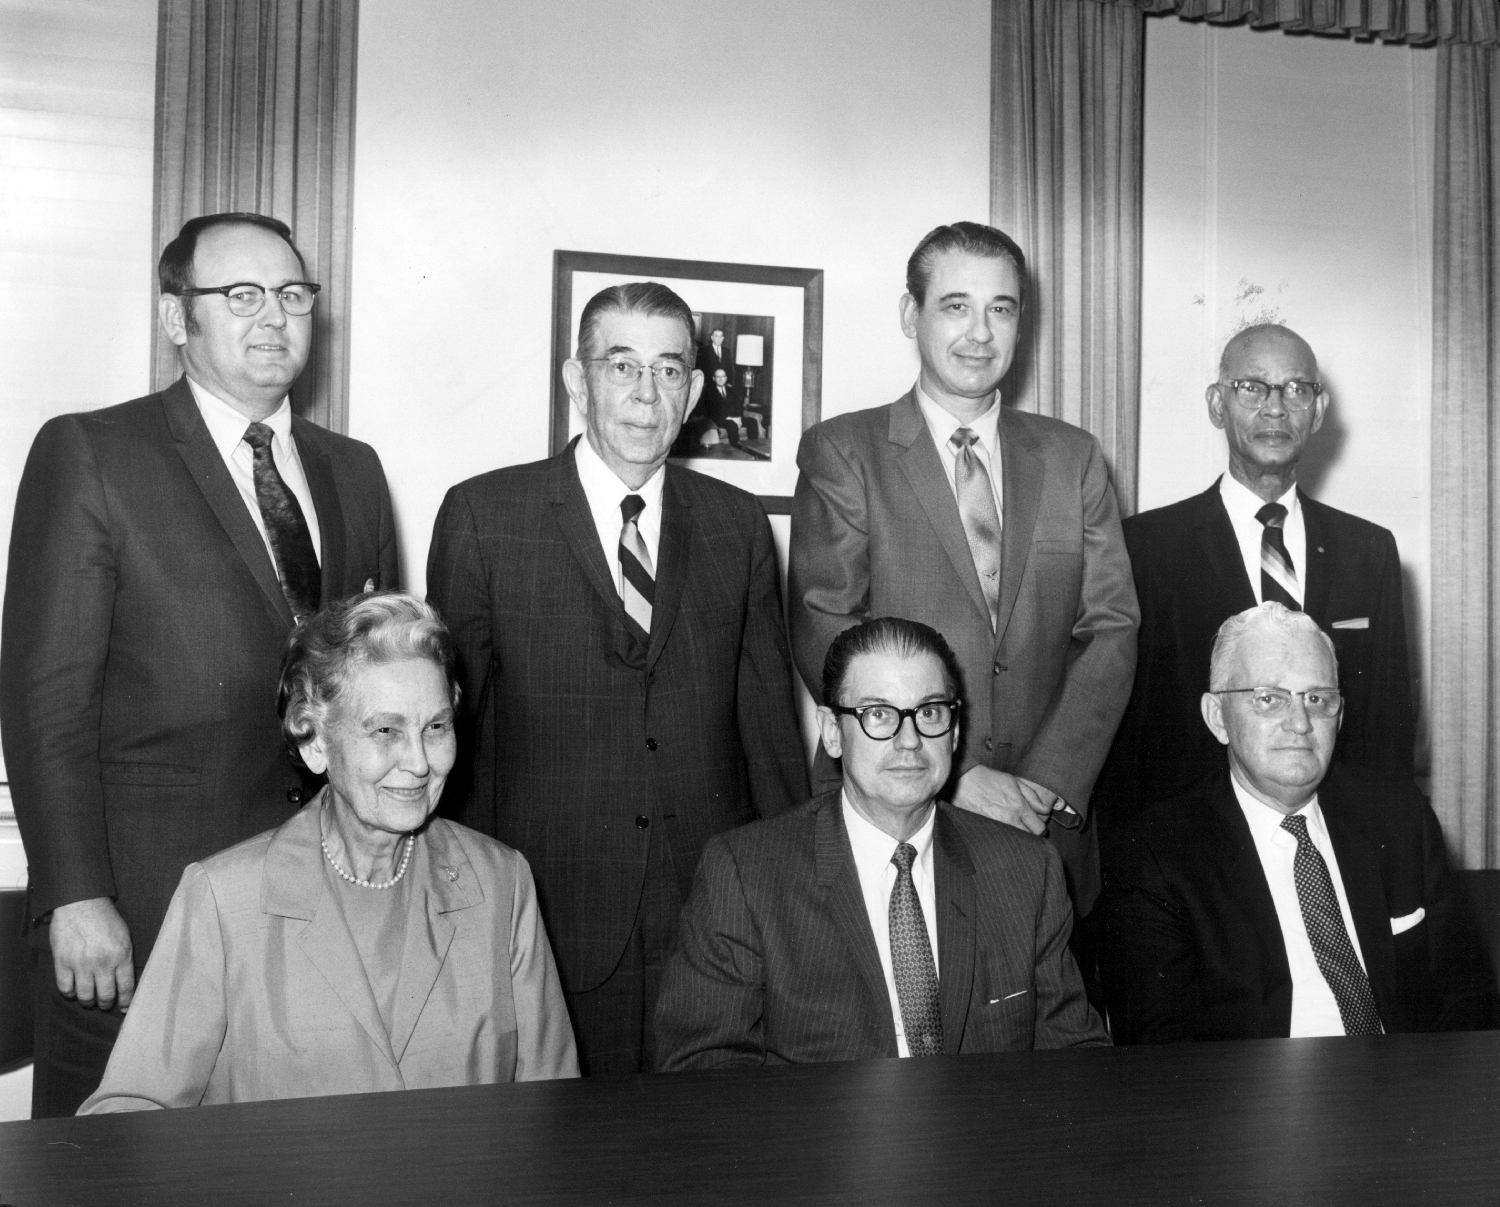 Original board members (top) Delbert Adams, Edward R. Hudson Sr., J. Ardis Bell, the Rev. L.L. Haynes, (bottom) May Owen, Jenkins Garrett and John Finn.